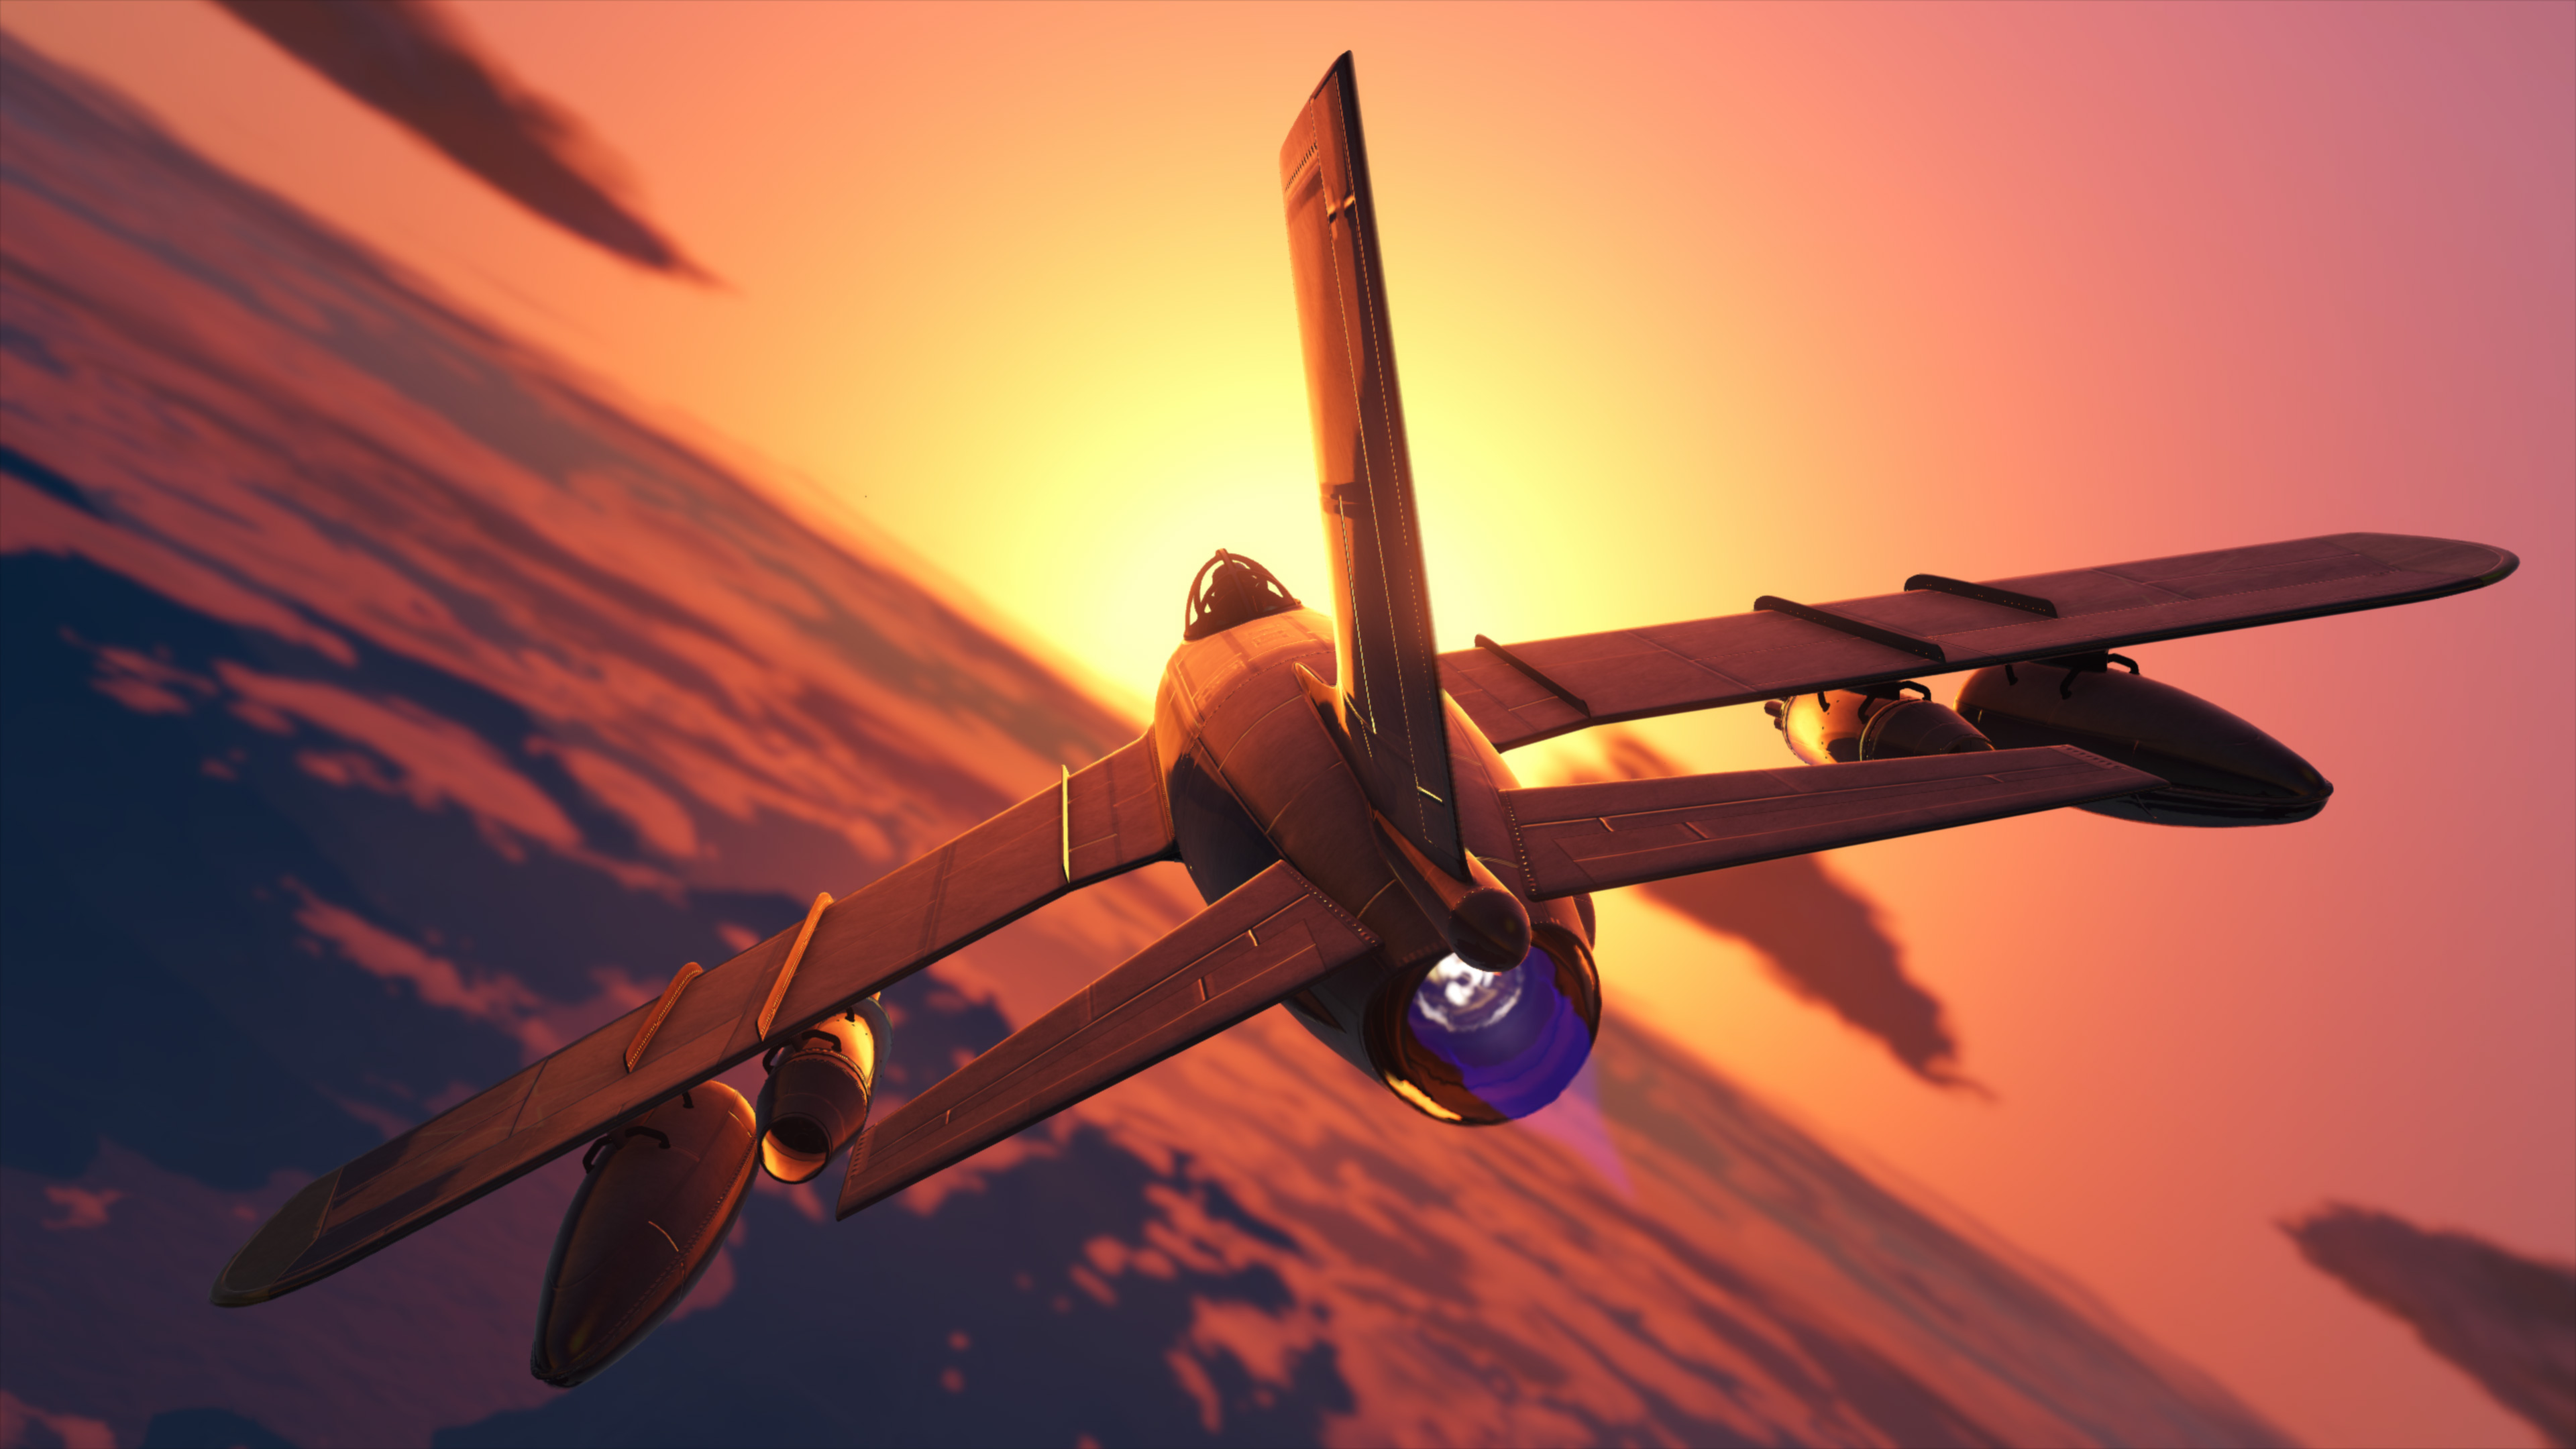 GTA Online's weekly update offers double rewards on yacht and plane missions